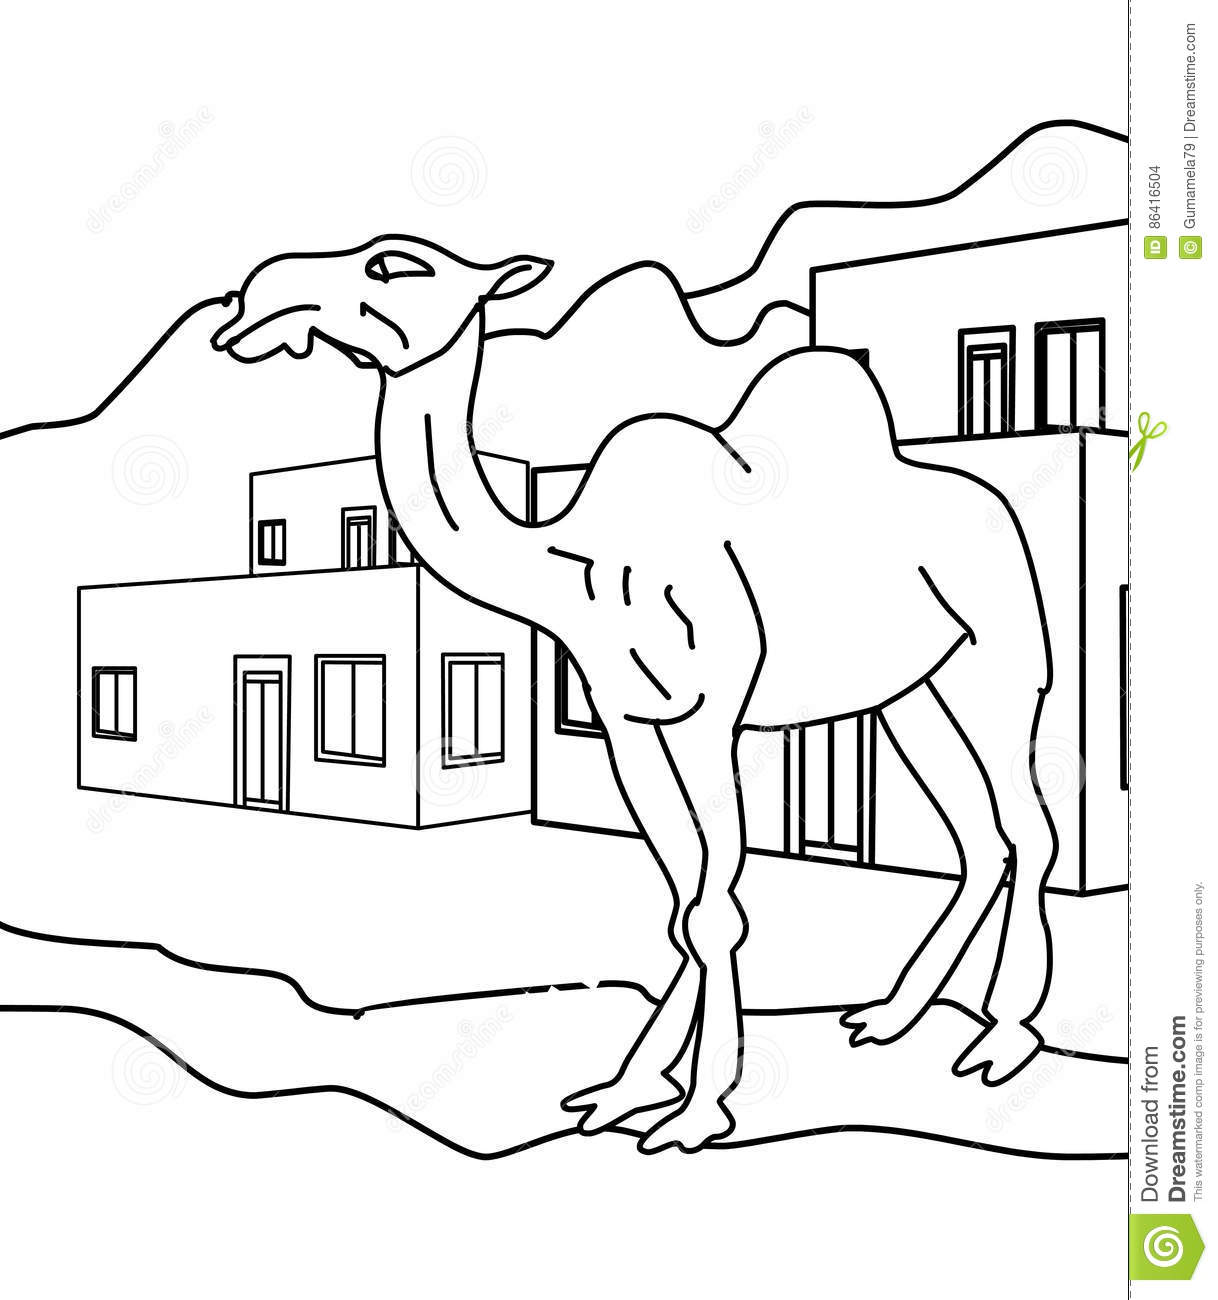 Camel coloring page stock illustration. Illustration of elephant ...